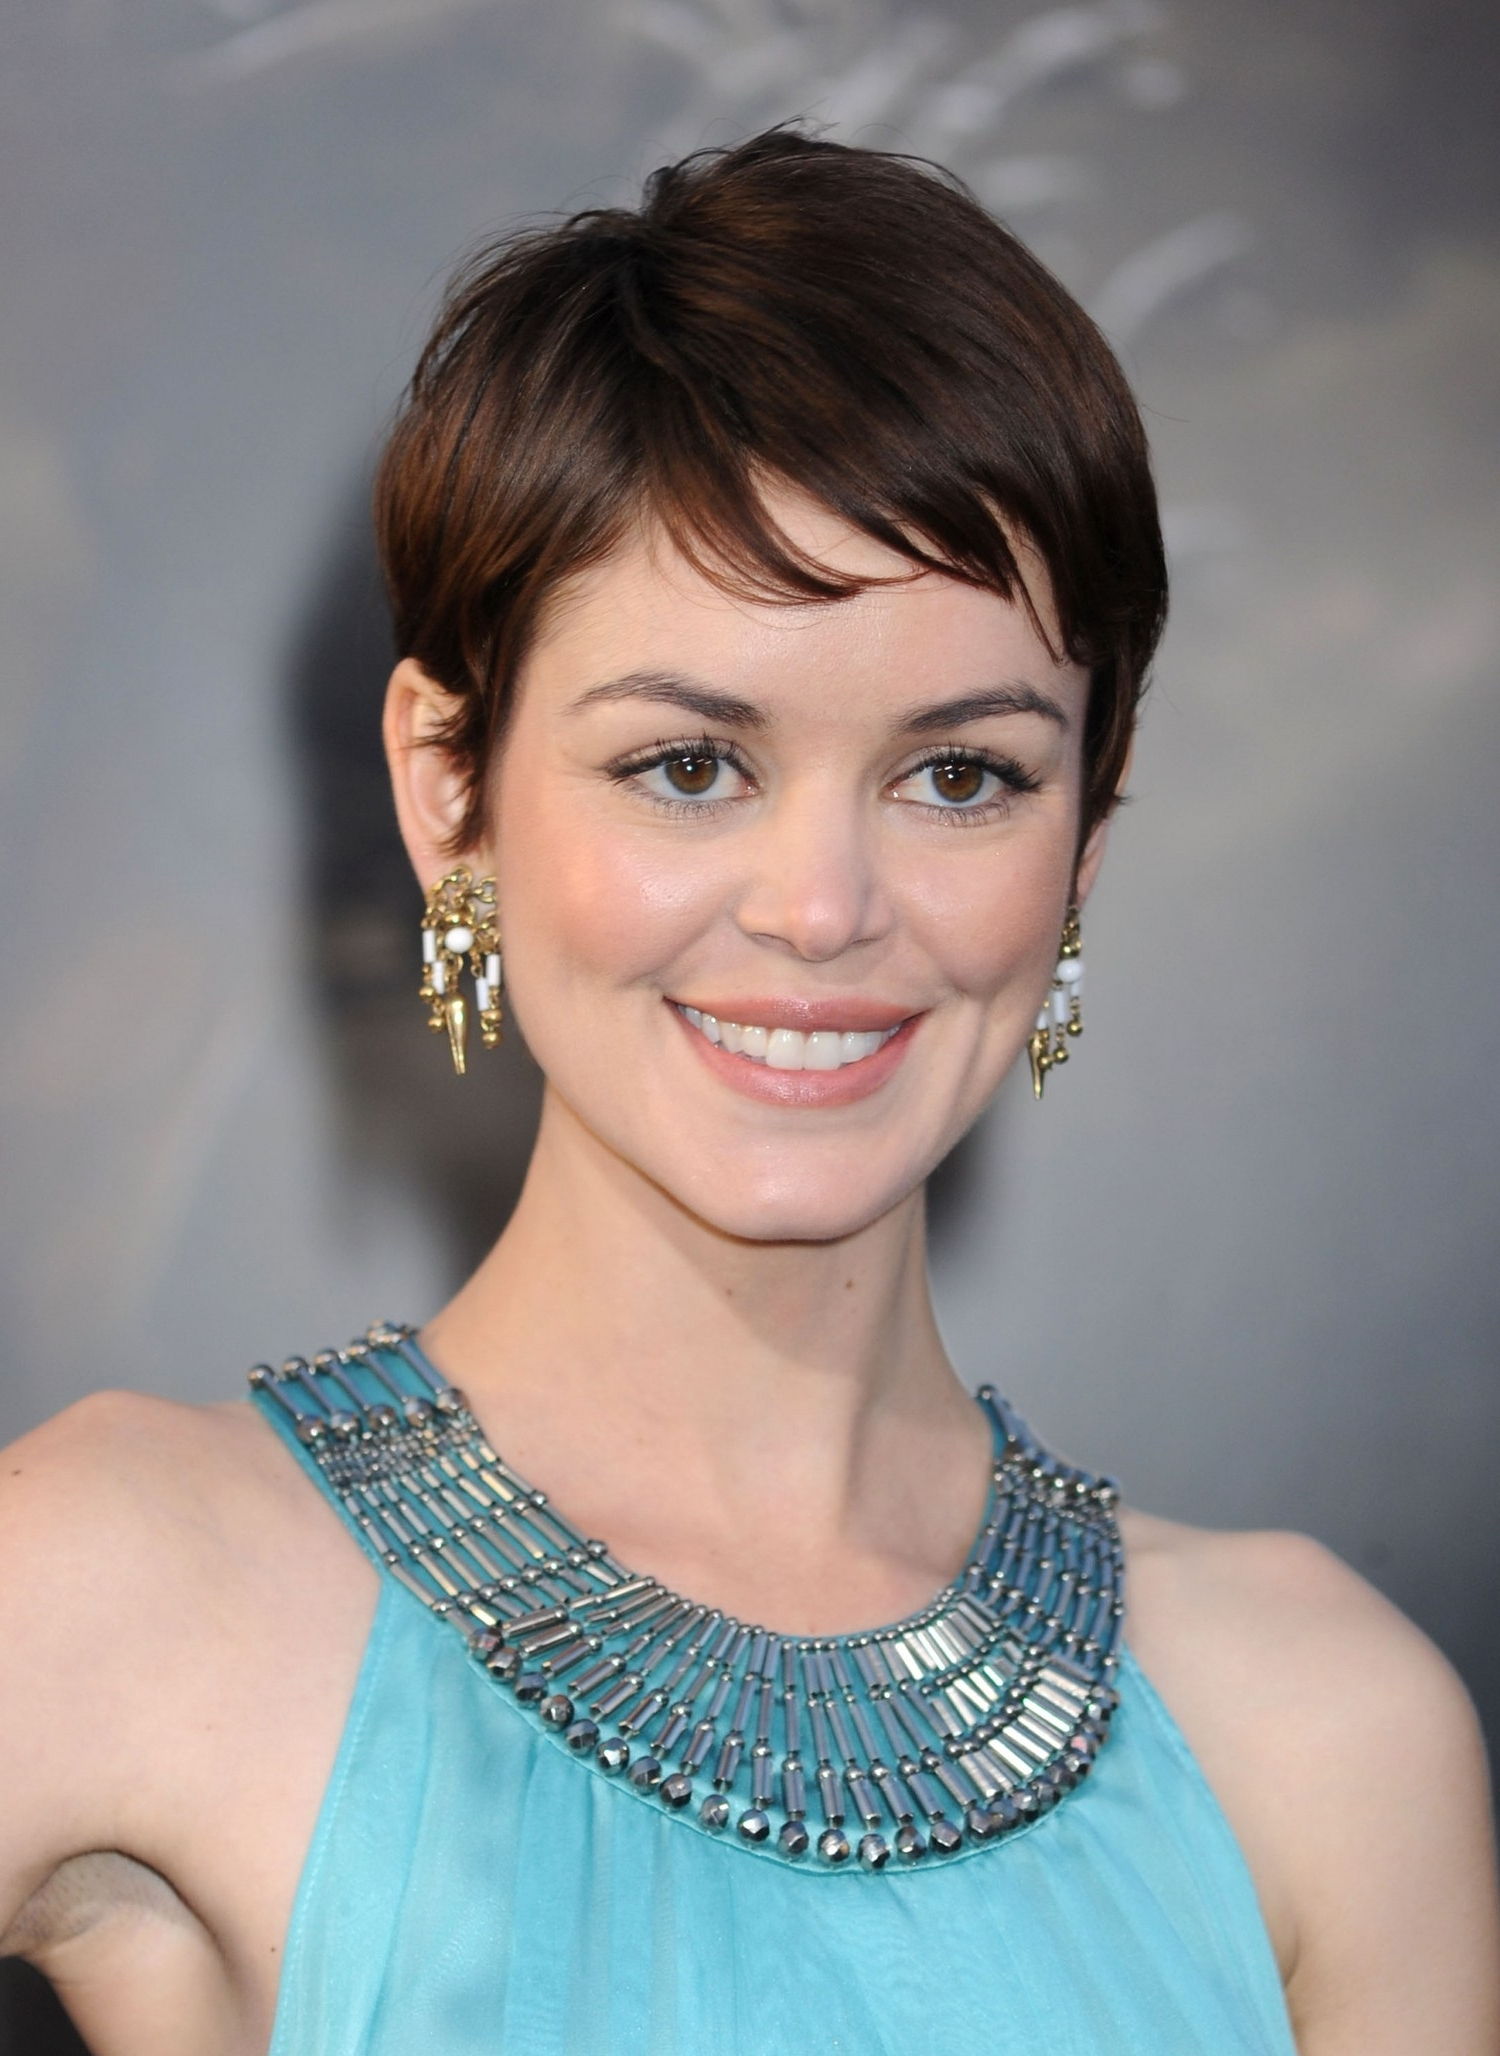 19 Cute Celebrity Haircuts To Consider   Glamour Intended For Most Recent Wavy Pixie Hairstyles (View 14 of 15)